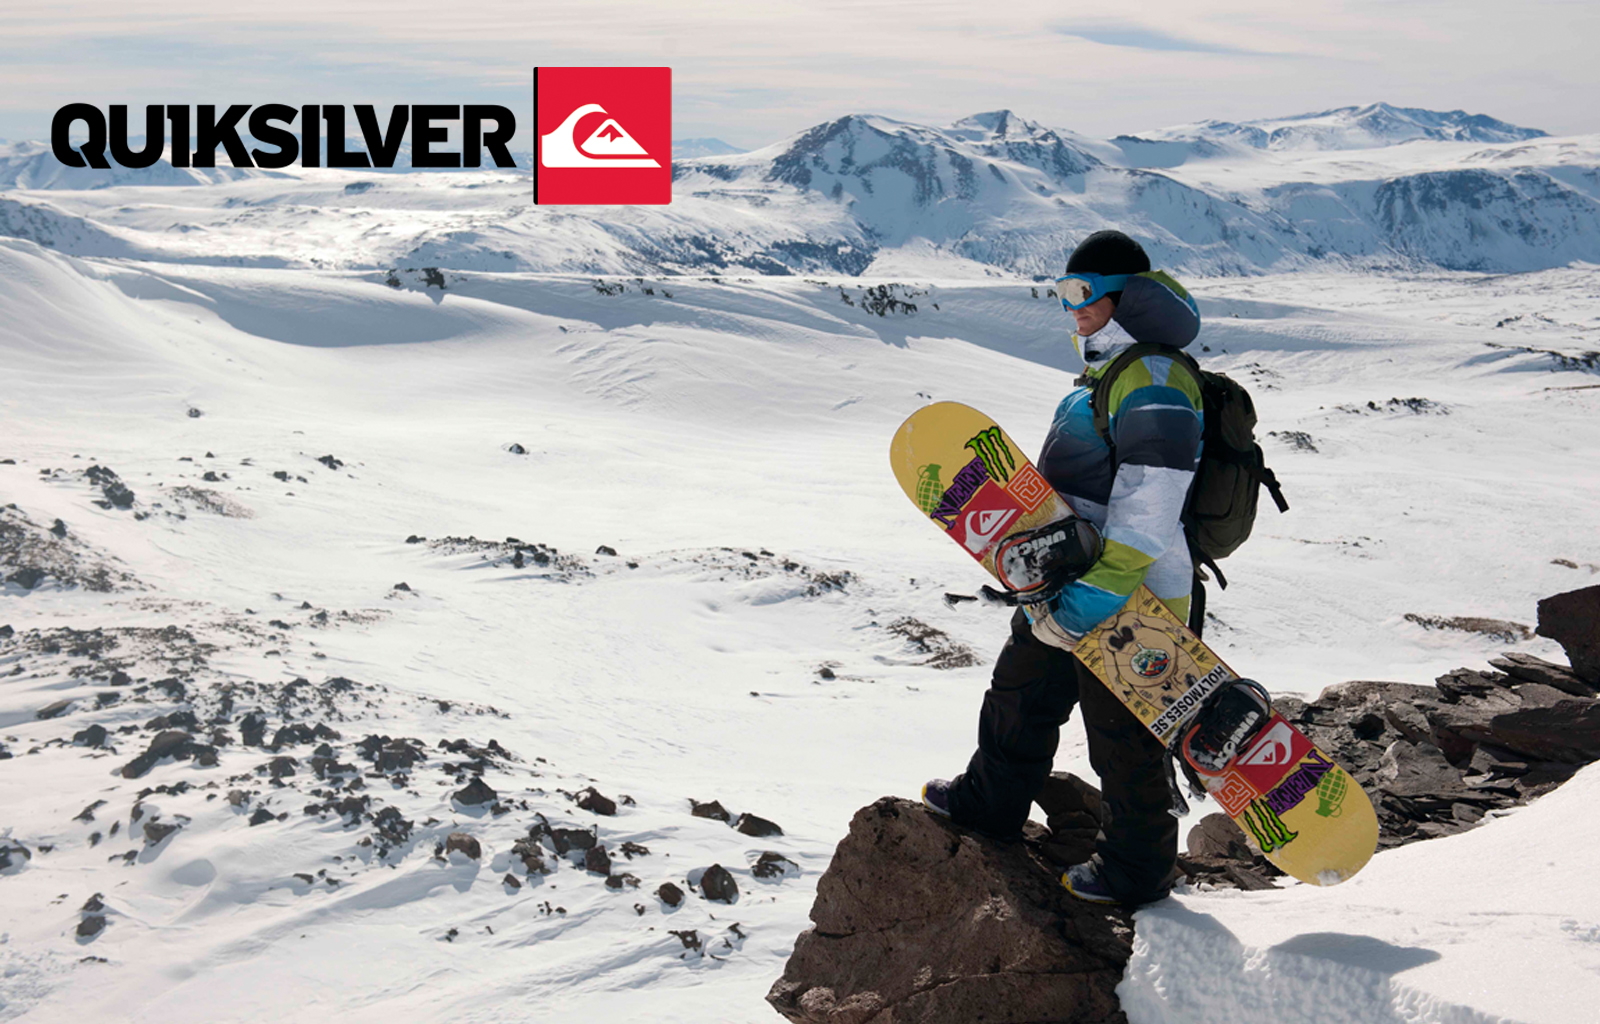 quiksilver snow wallpaper wwwimgkidcom the image kid